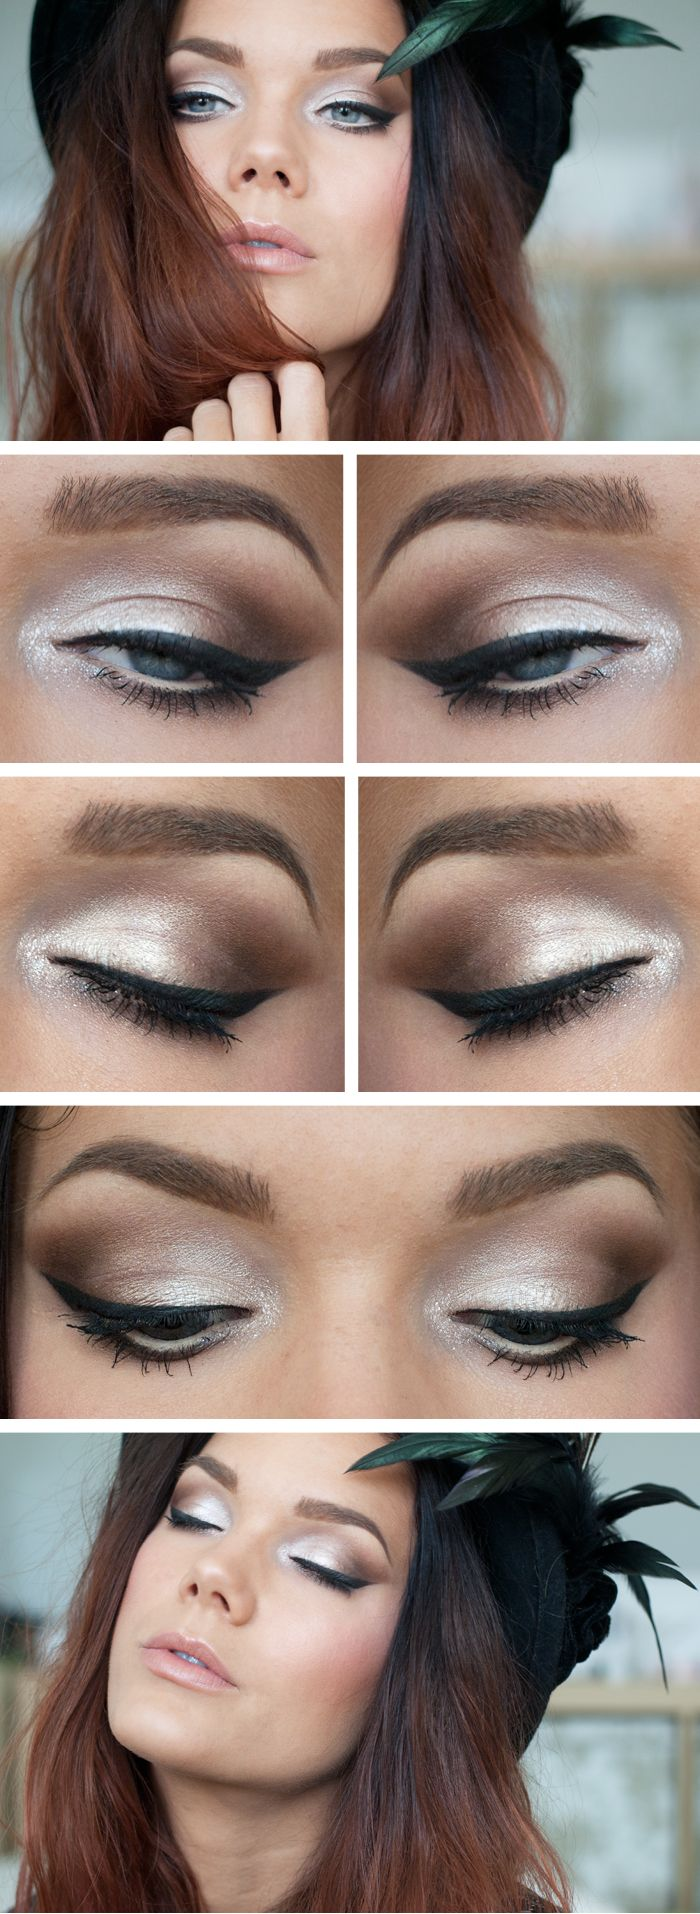 White dress eye makeup - Find This Pin And More On Makeup Nails